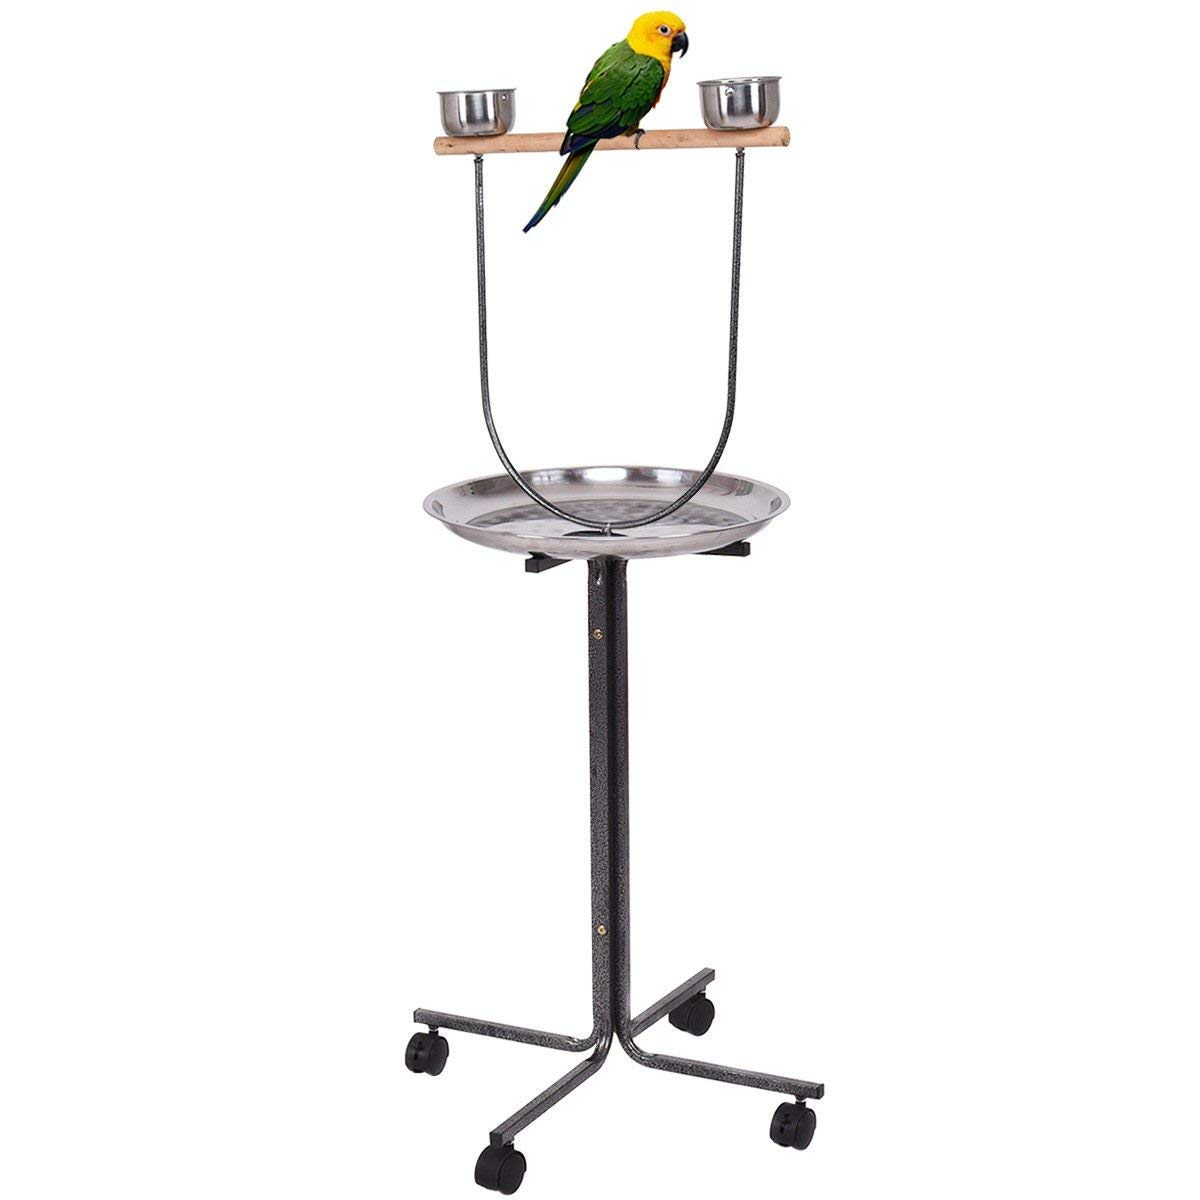 Giantex 51 Bird Play Stand, Wood Bar Large Stainless Steel Tray